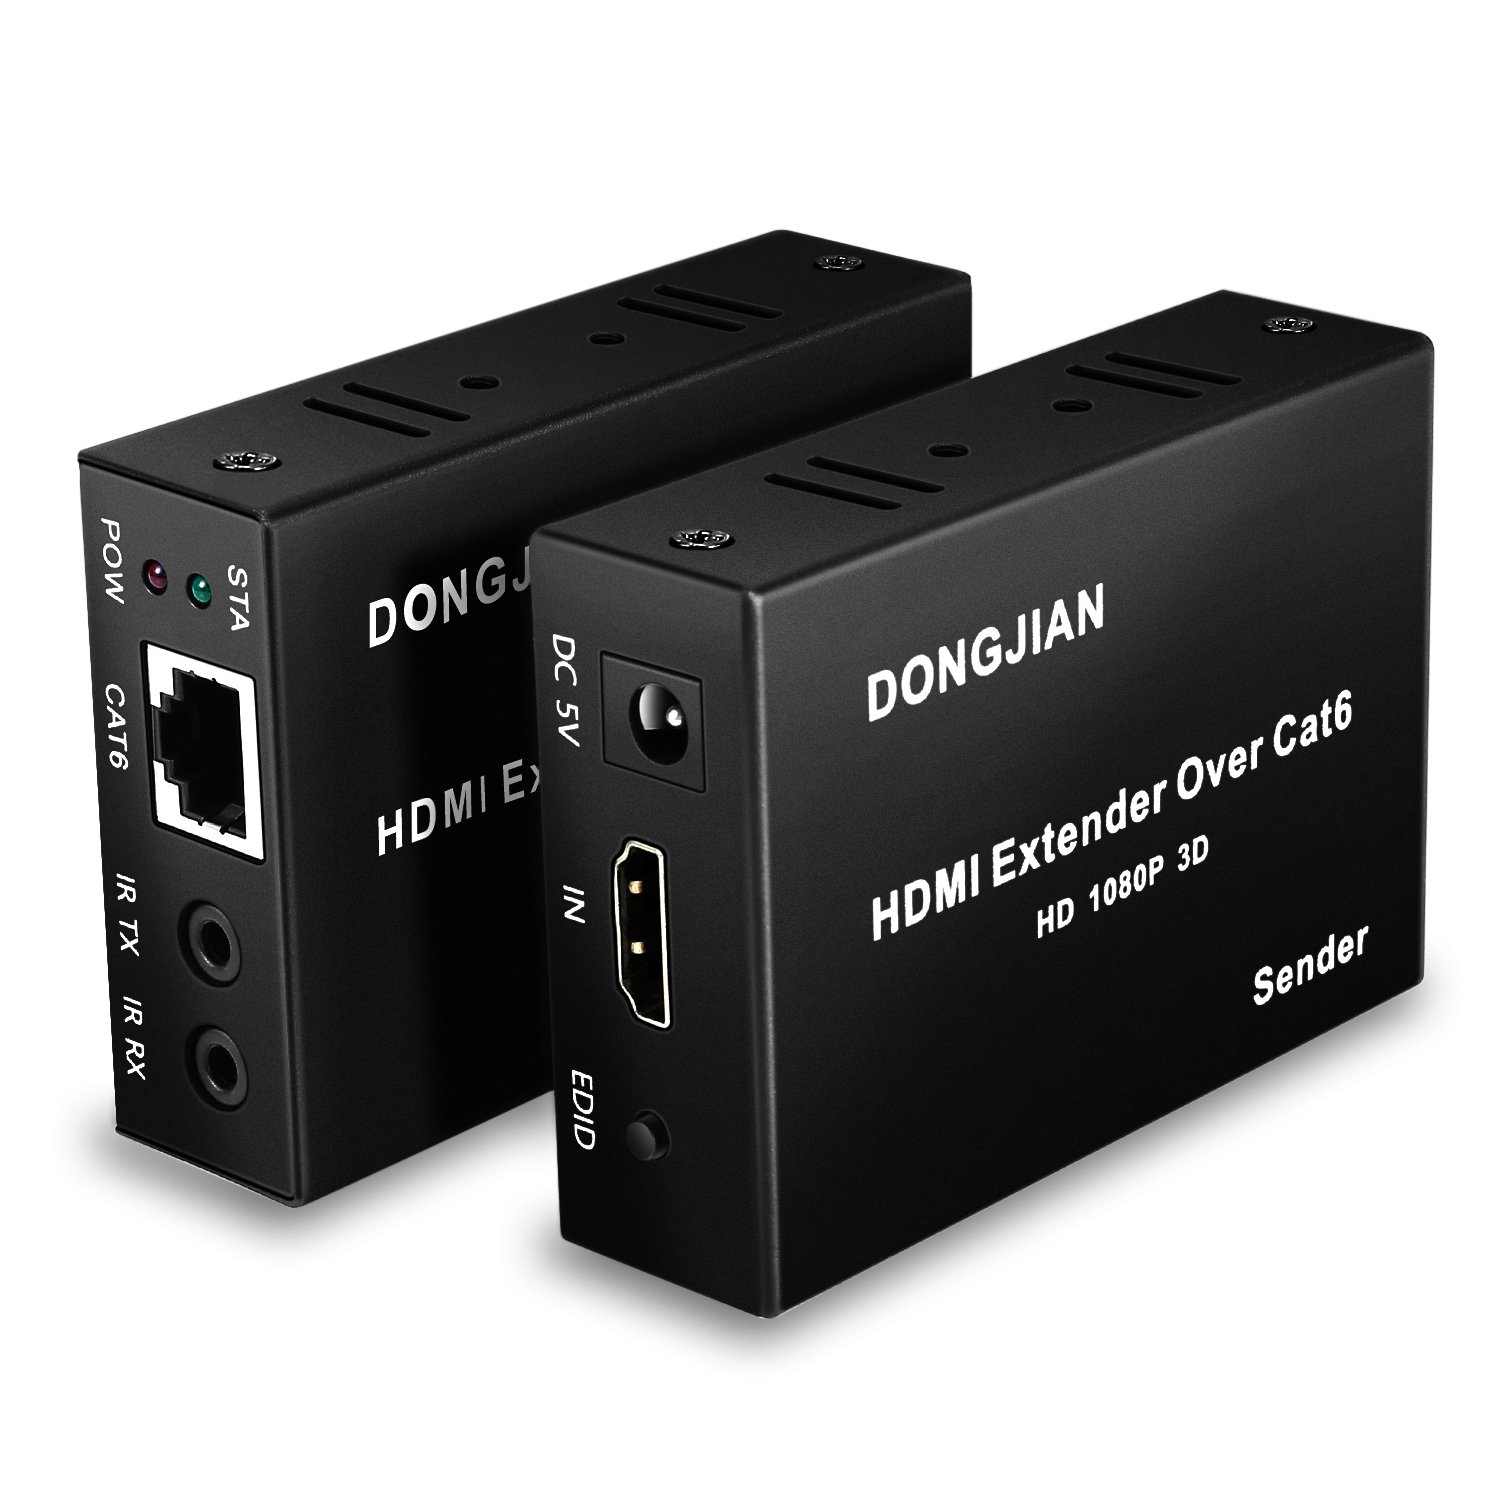 DONGJIAN HDMI Extender Over Cat5e/Cat6 Cable with IR Control for HDTV, DVD, Xbox 360, PS3, Blu-Ray and PCs Support 1080p, 3D